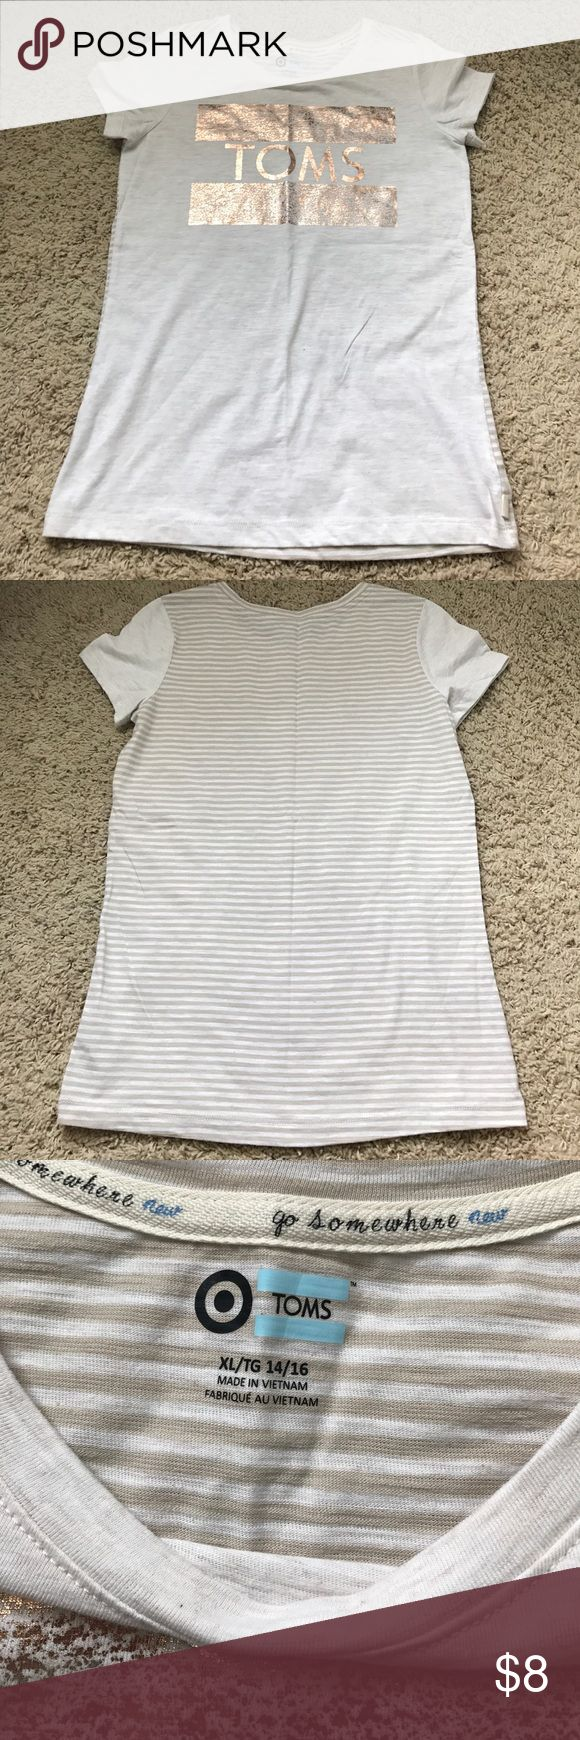 TOMS target gold shirt TOMS target gold shirt- kids XL 14/16 but fits like a women's small (worn once) Toms Tops Tees - Short Sleeve